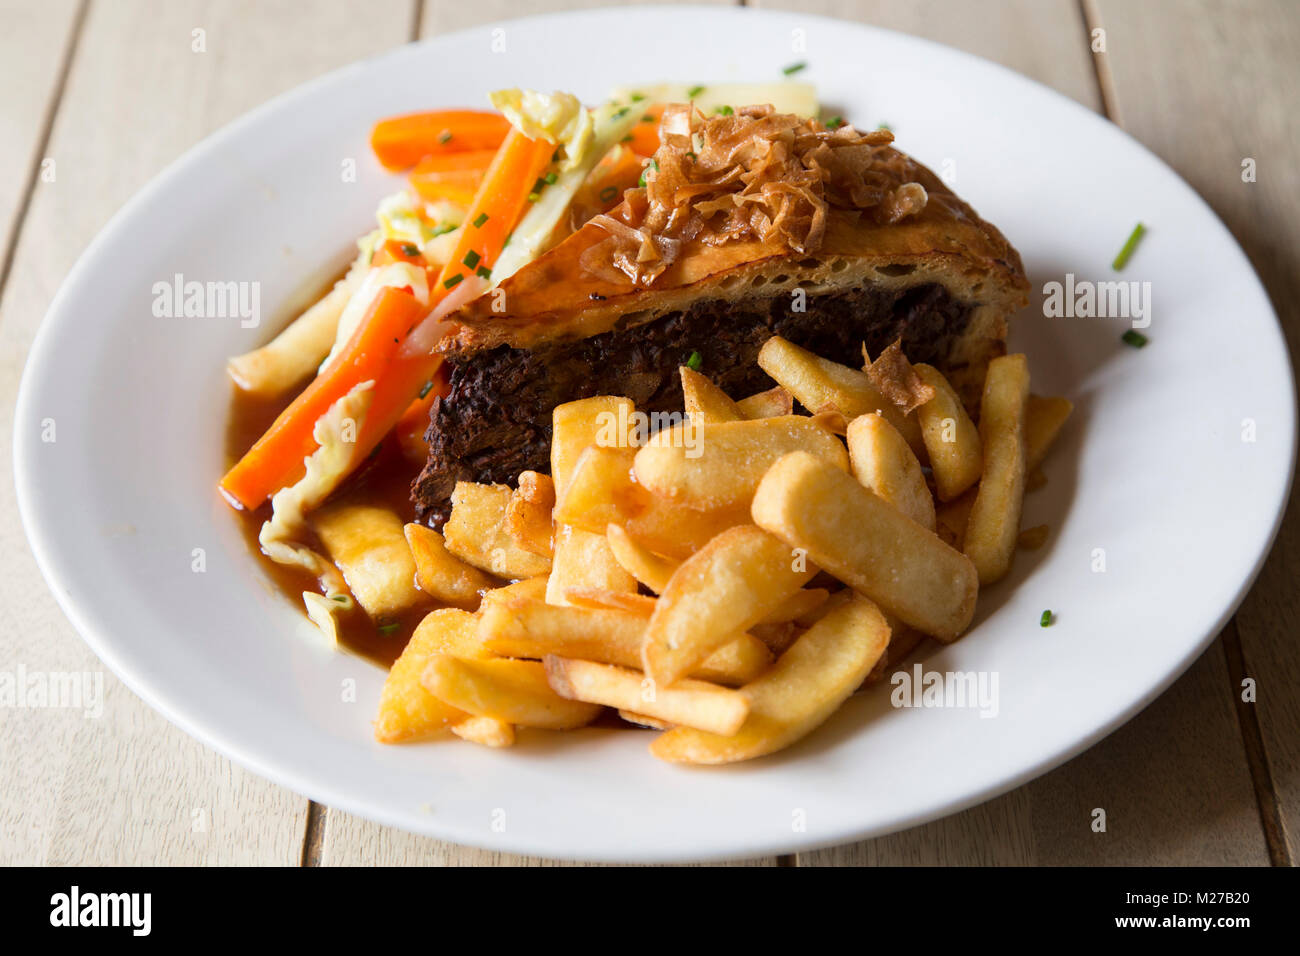 Steak and ale pie served with chips. The dish is a popular British pub meal. - Stock Image